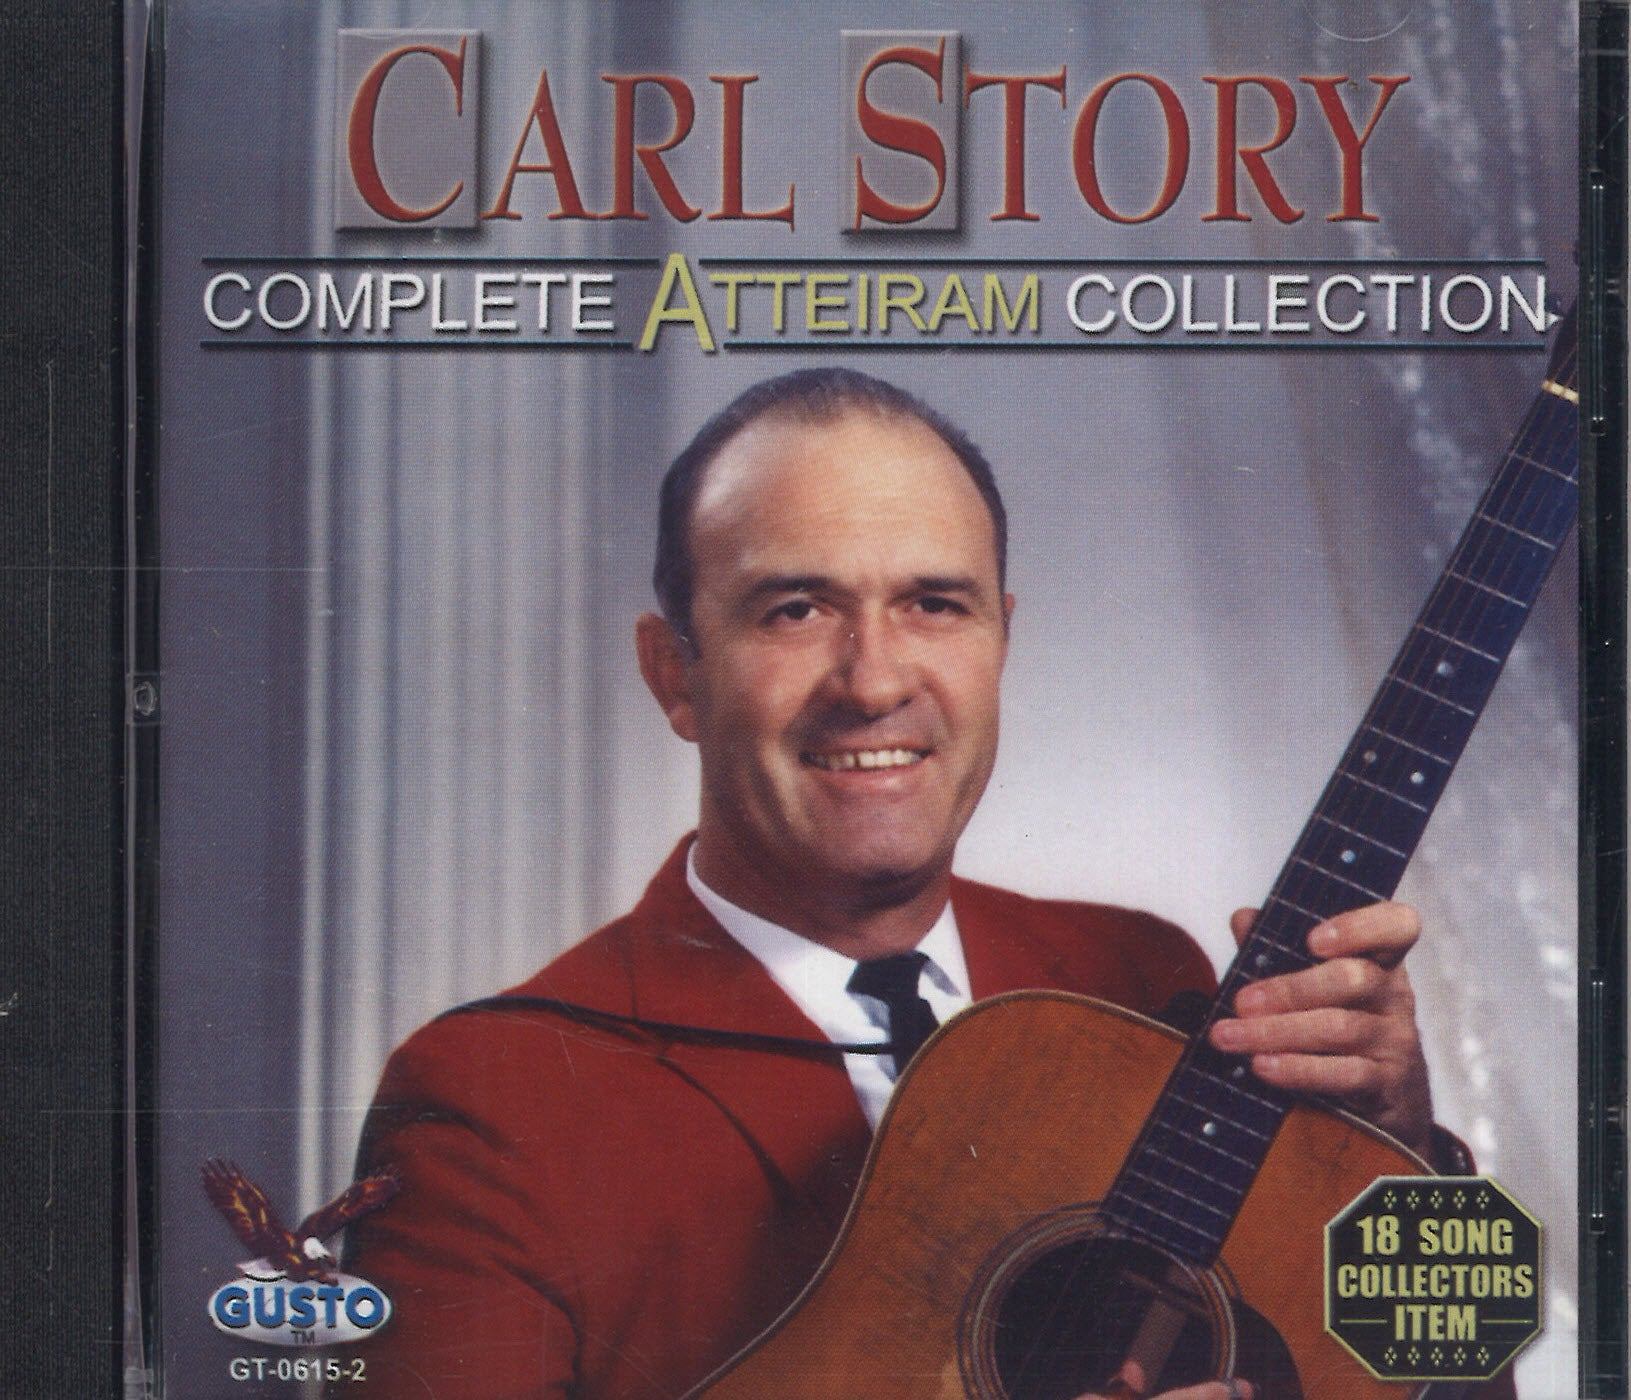 Carl Story Complete Atteiram Collection